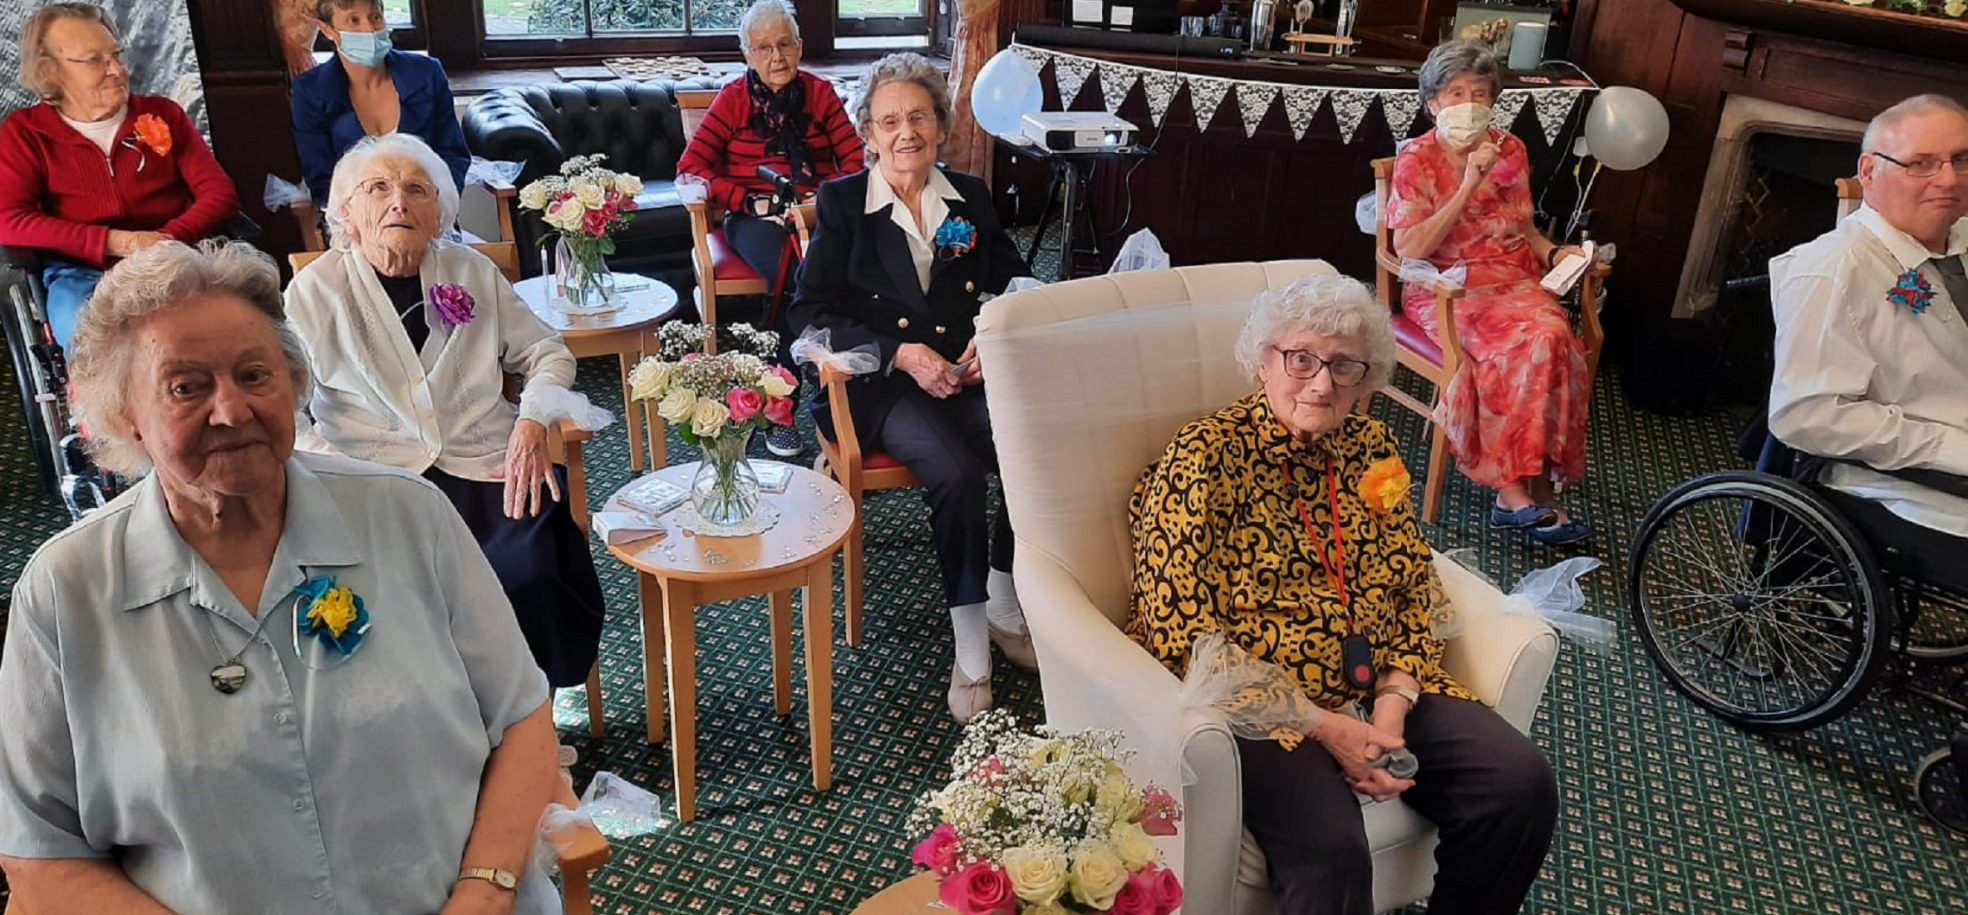 Prince Edward Duke of Kent Court resident Dot Bash (wearing a yellow patterned blouse) watching a live stream of her granddaughter's wedding with fellow residents.